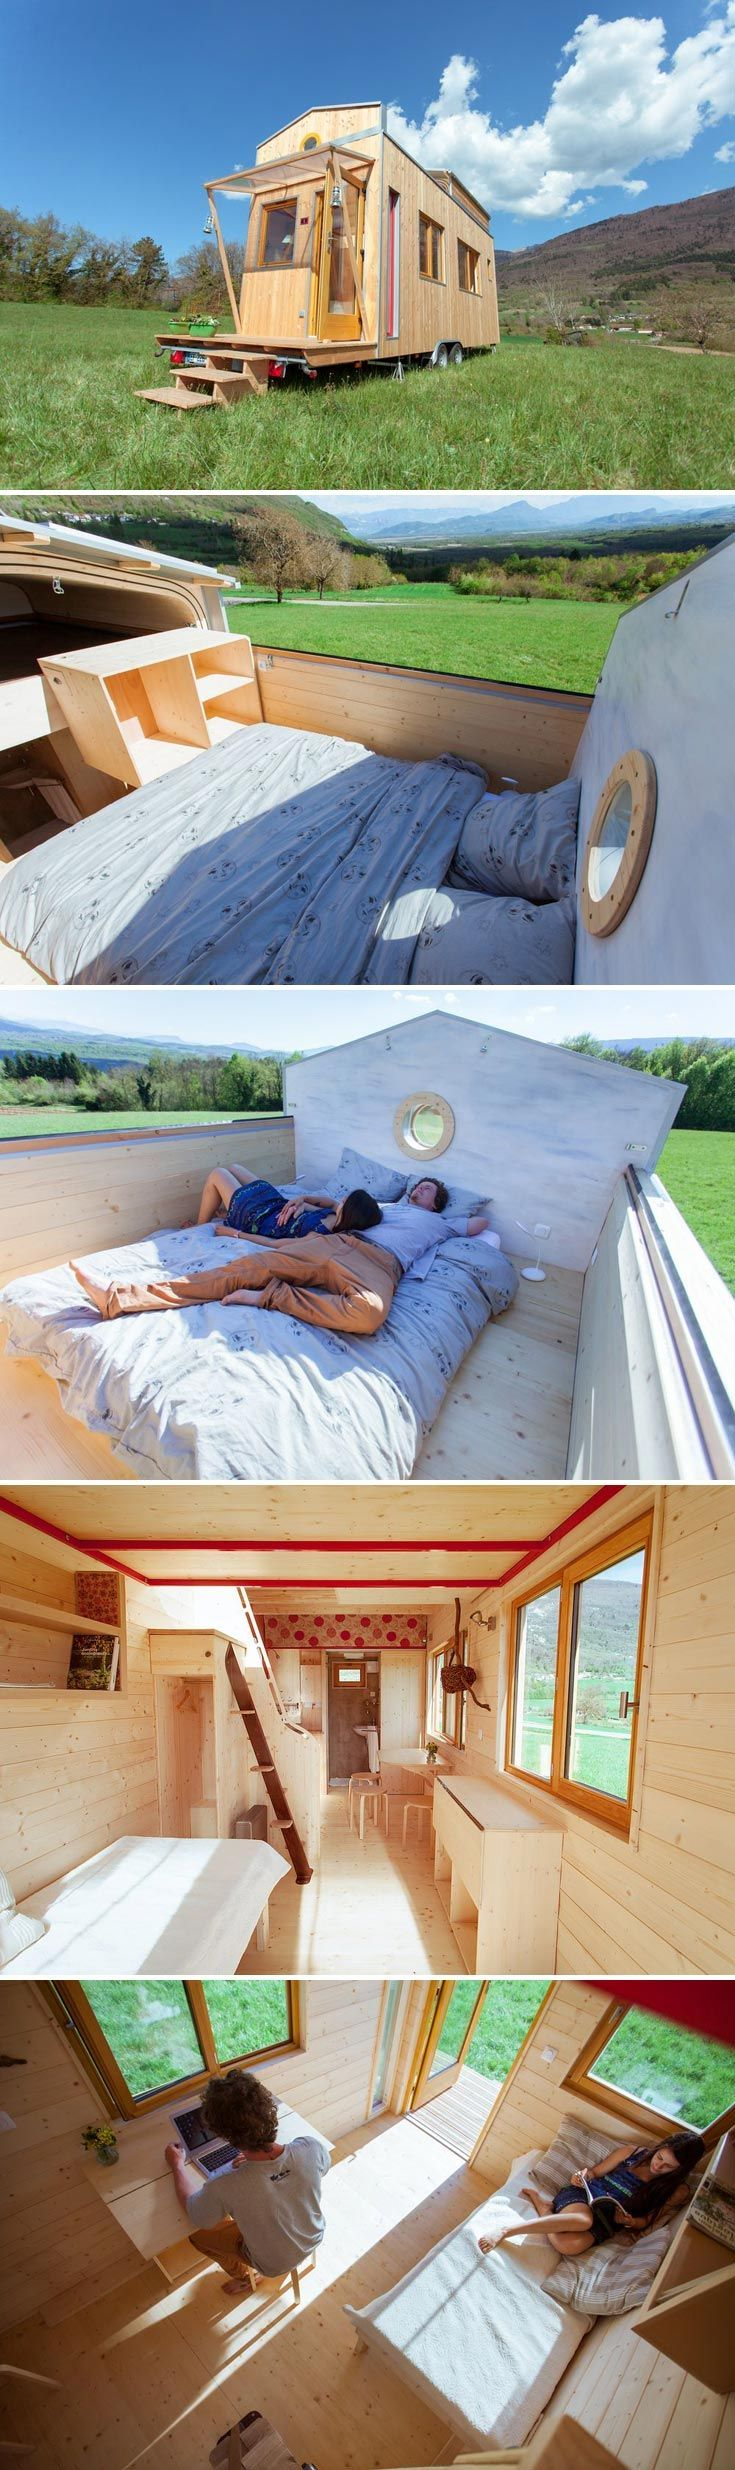 With its sliding roof, the Head in the Stars offers a unique tiny house experience. Built by France's Optinid, this tiny home gives you the chance to sleep under the stars from the comfort of your own bed. #tinyhome